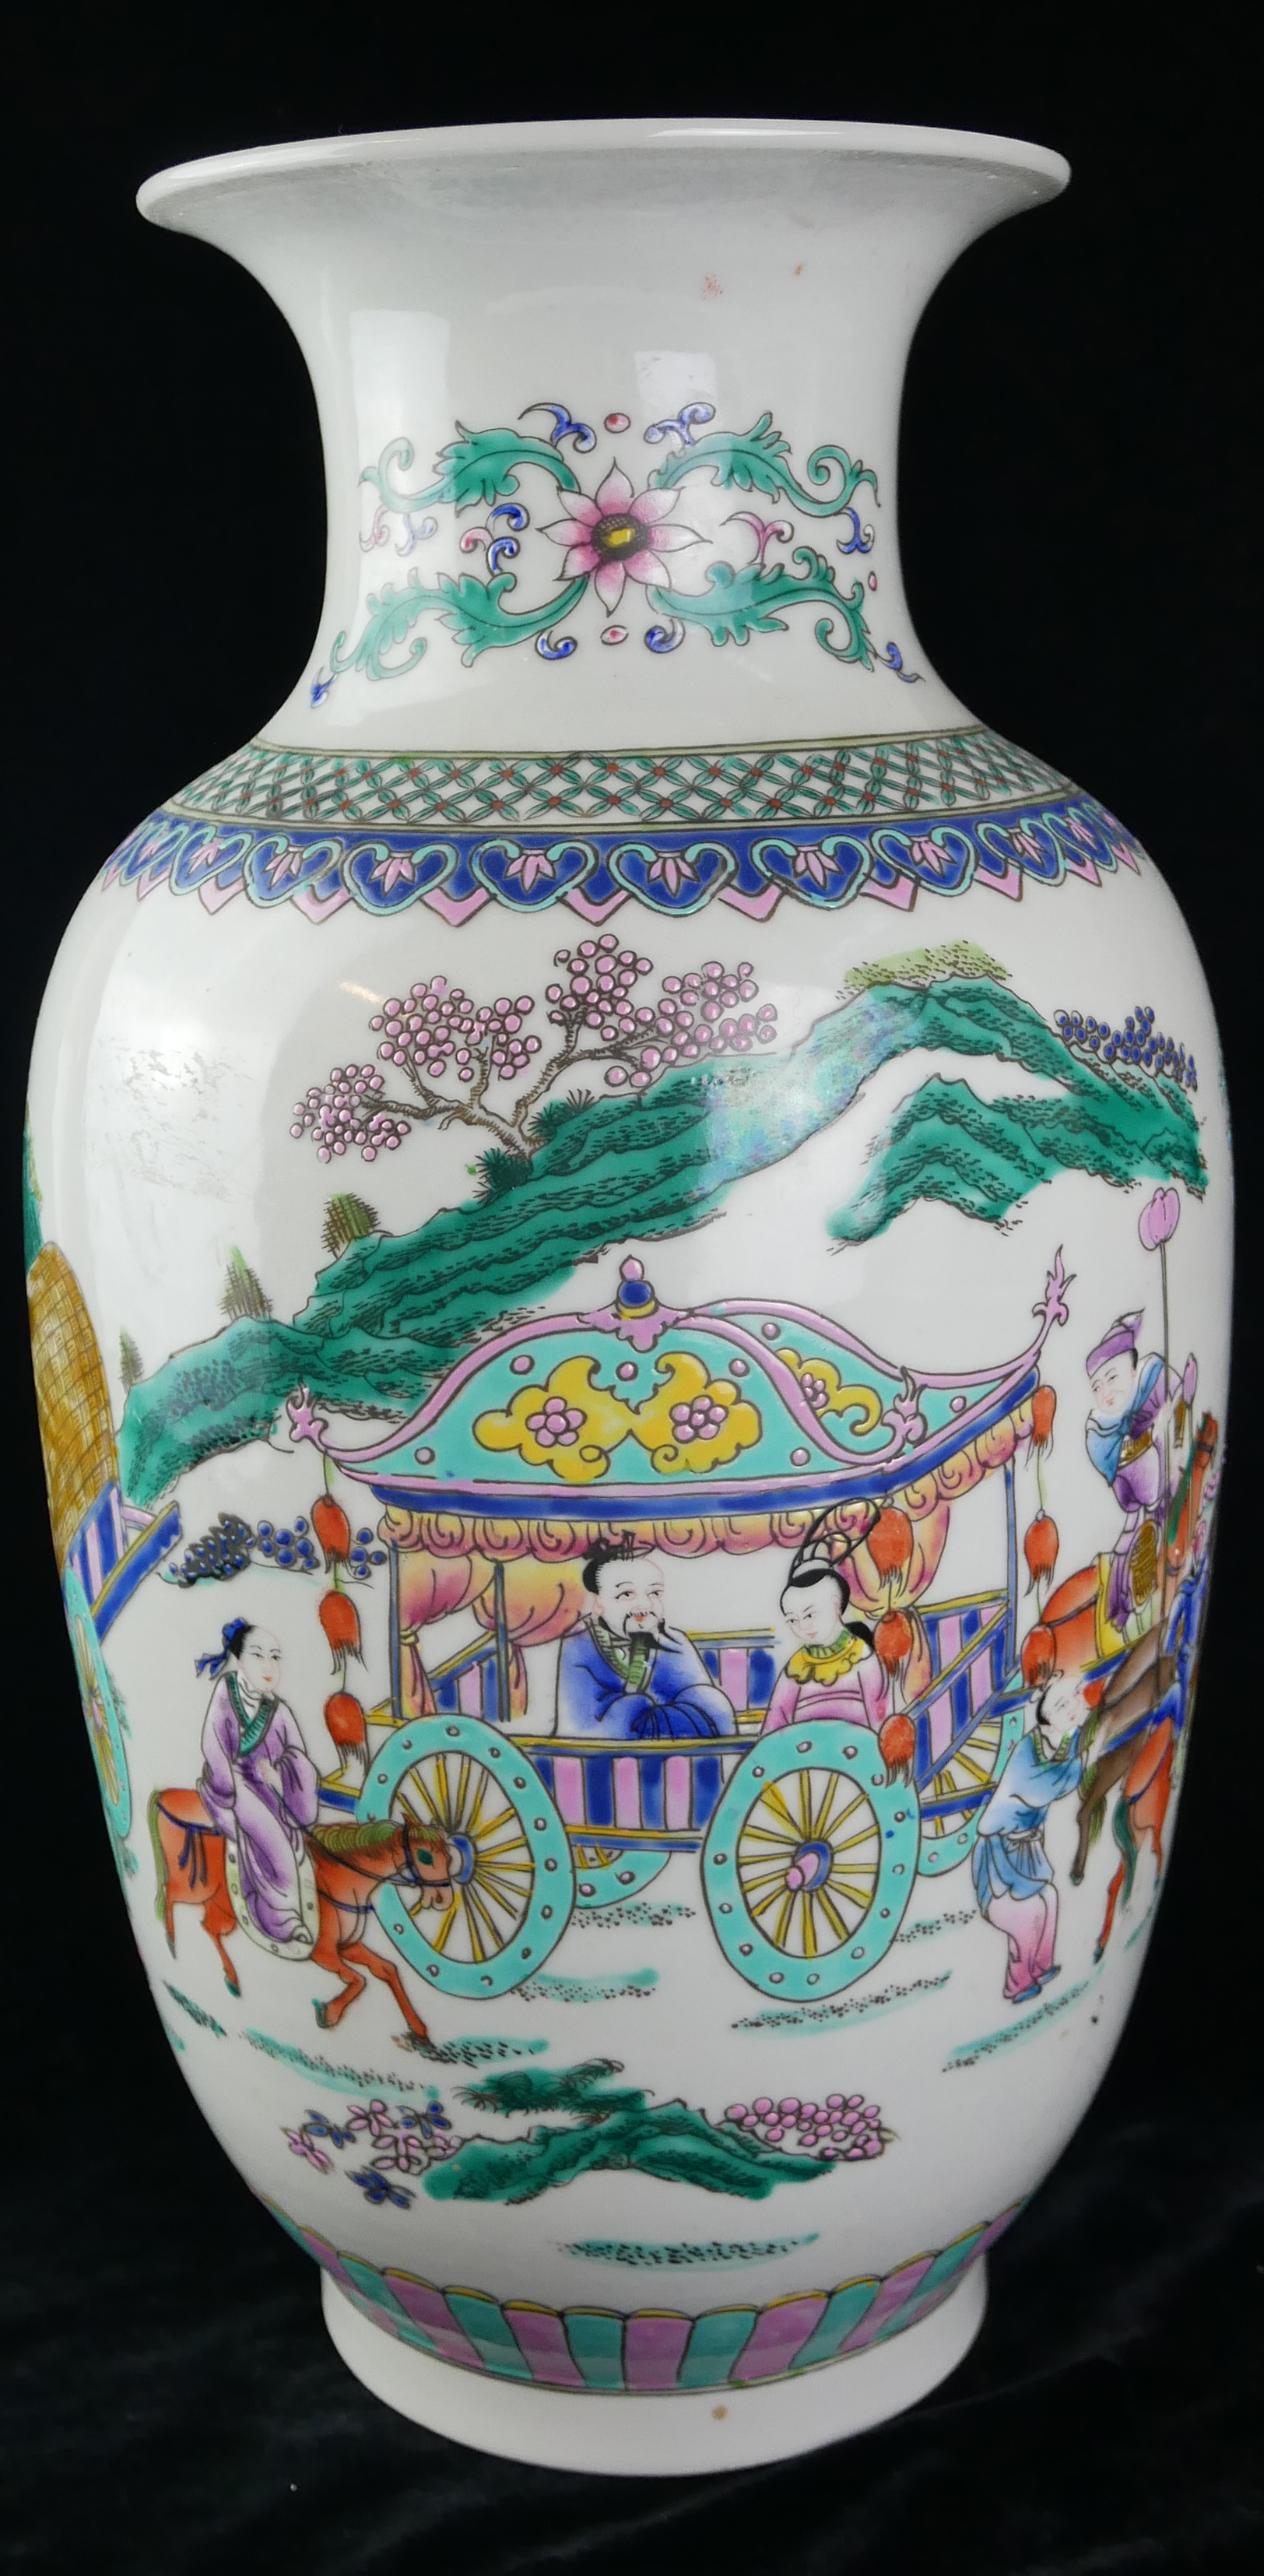 A CHINESE FAMILLE ROSE DESIGN PORCELAIN VASE Decorated with an Emperor with Royal carriage and - Image 2 of 4